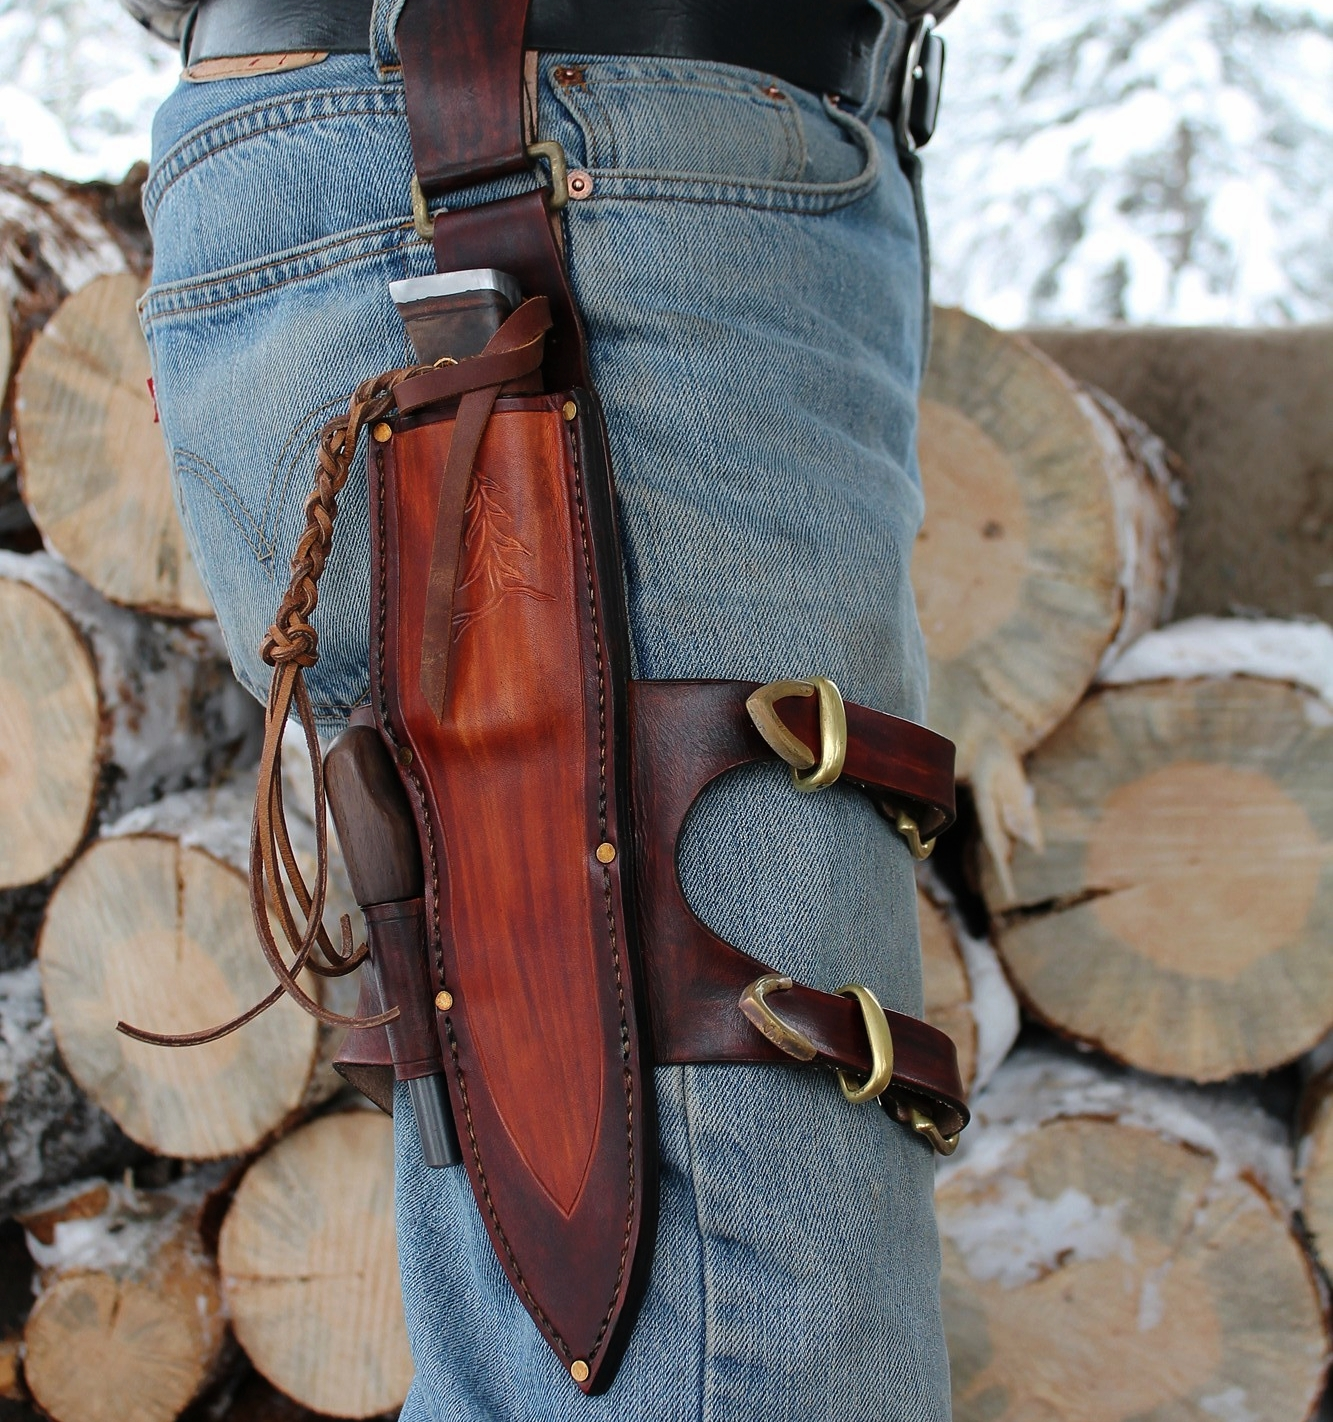 This custom made sheath set up becomes part of your body.